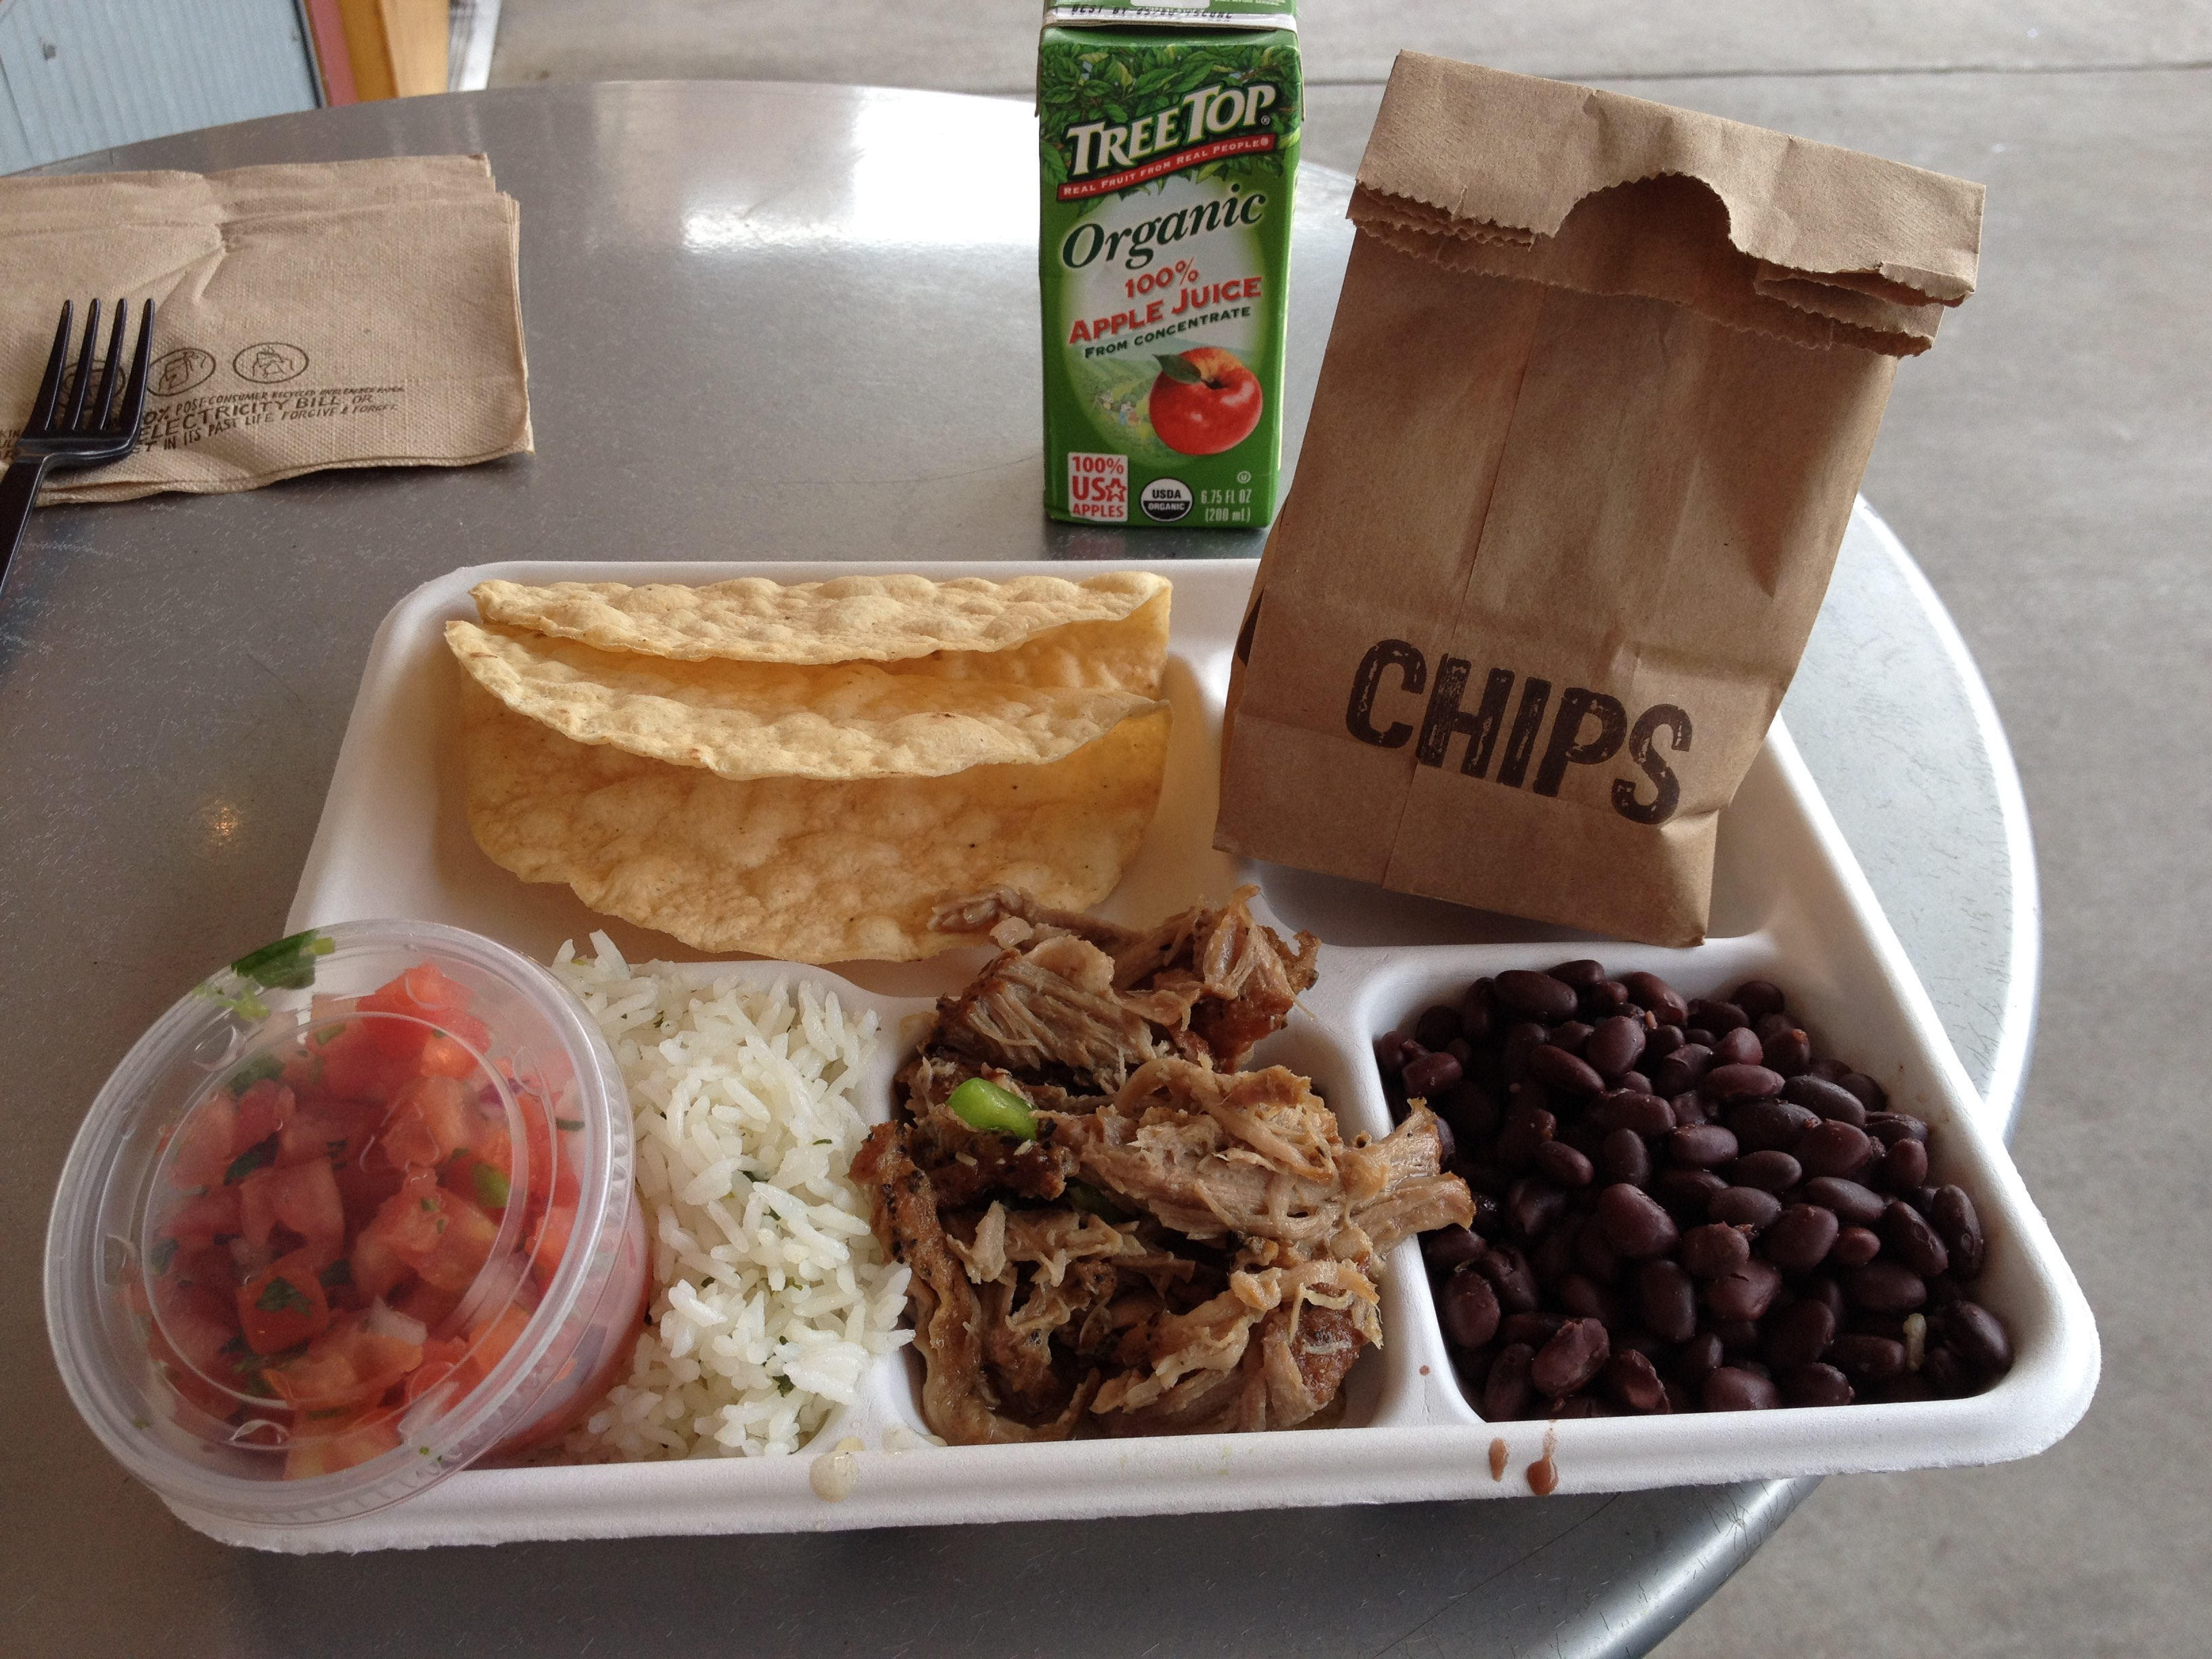 Chipotle's Two Taco Kit